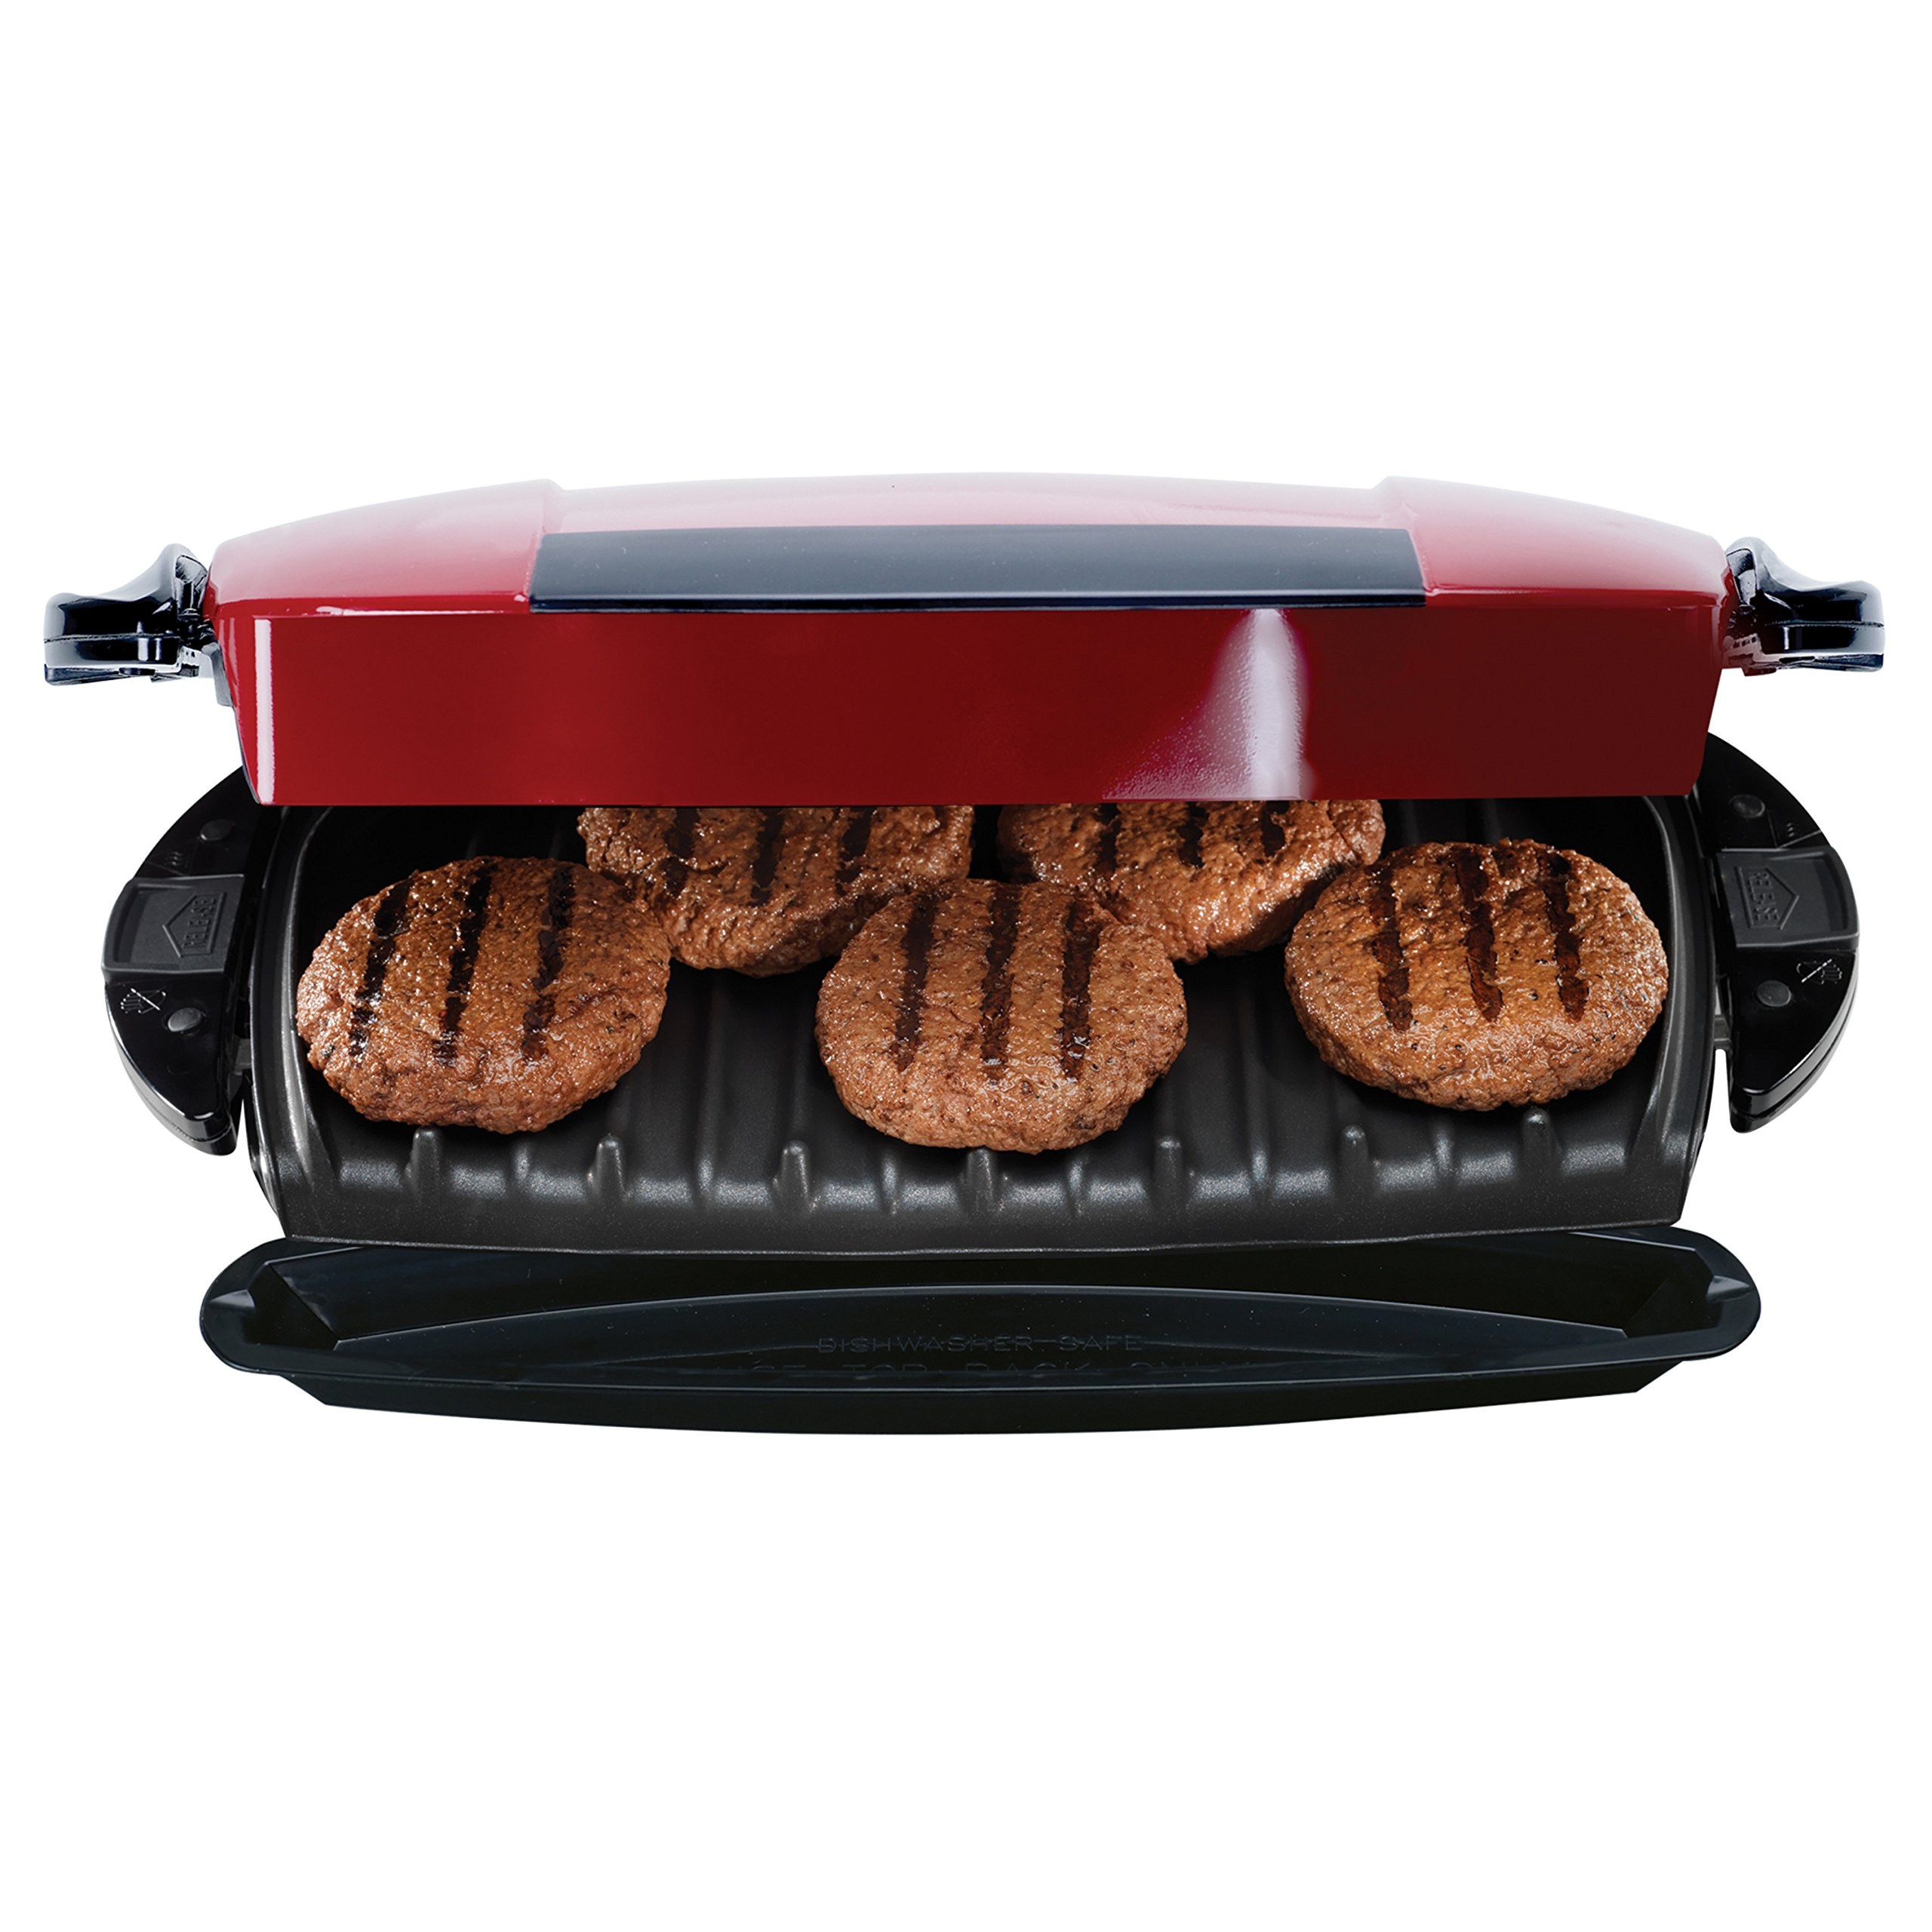 George Foreman 5-Serving Removable Plate Electric Indoor Grill and Panini Press, Red, GRP0004R by George Foreman (Image #8)